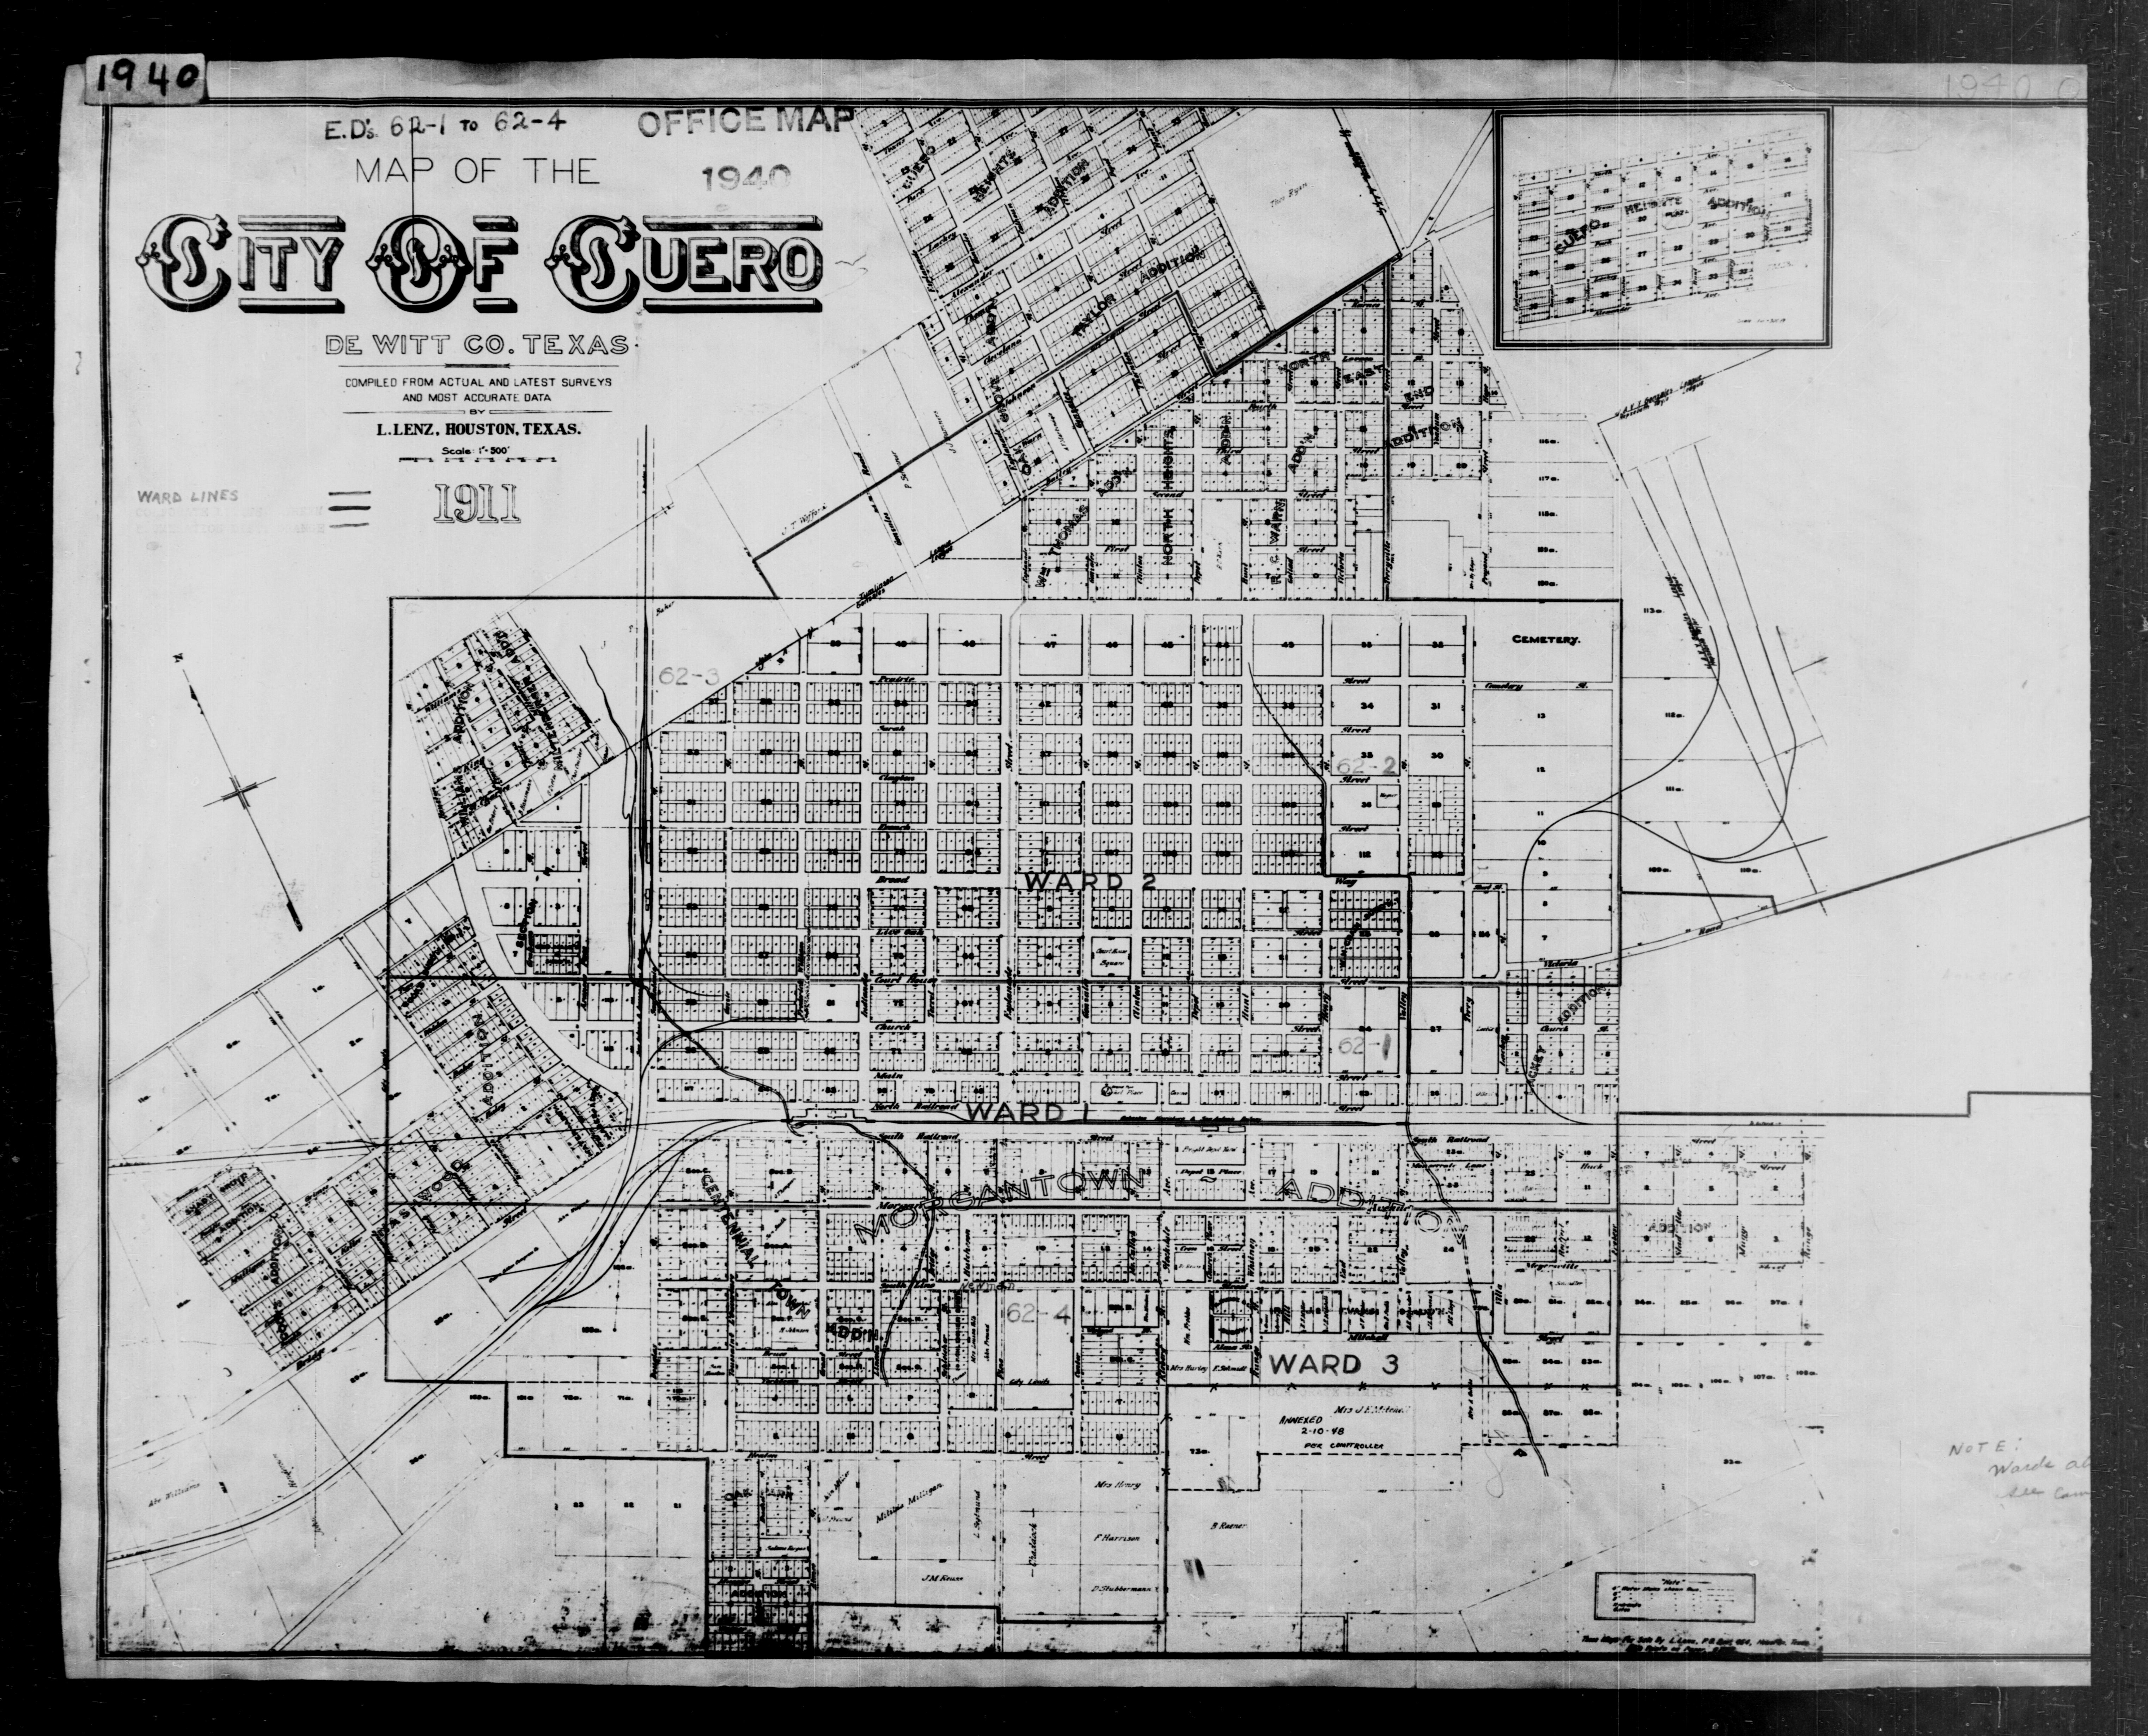 Awesome collection of birth certificate houston business cards 1940 census texas enumeration district maps perry castaeda map aiddatafo Image collections